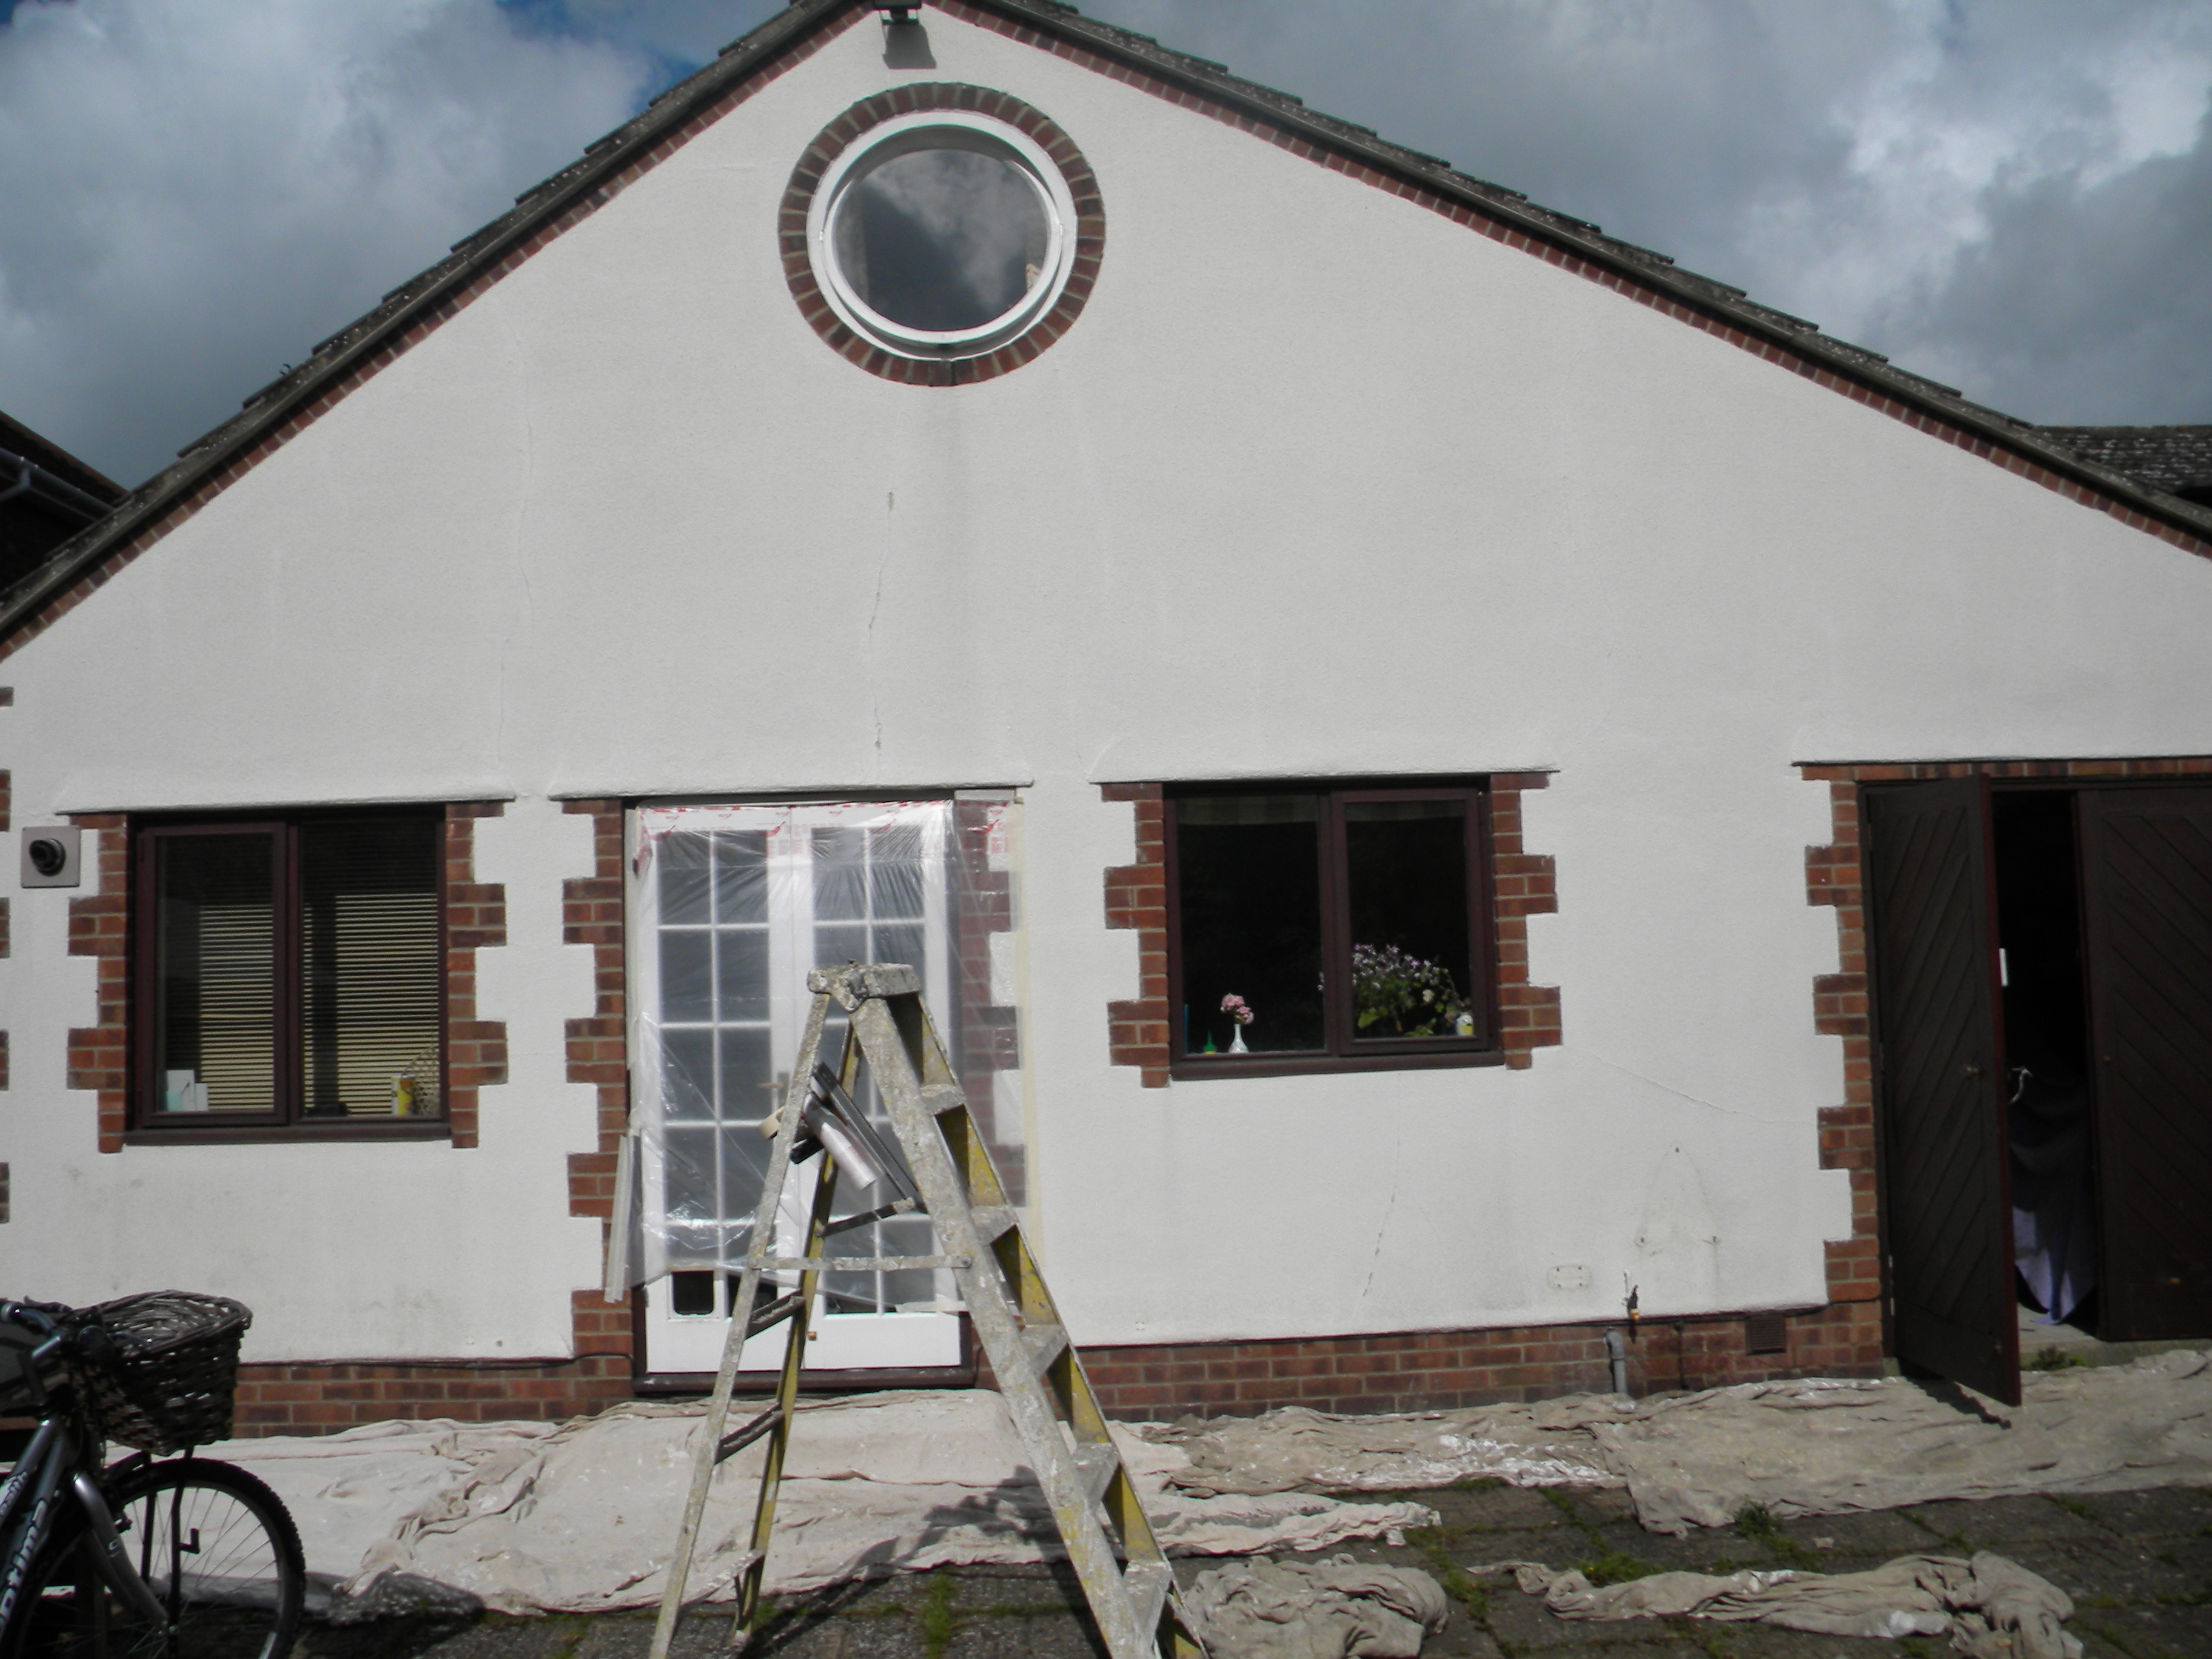 We Offer All Of The EXTERNAL WALL INSULATIONS In The UK . These Systems  Insulate And Renovate The Exterior Walls Of Your Property And All Are BBA  Approved.